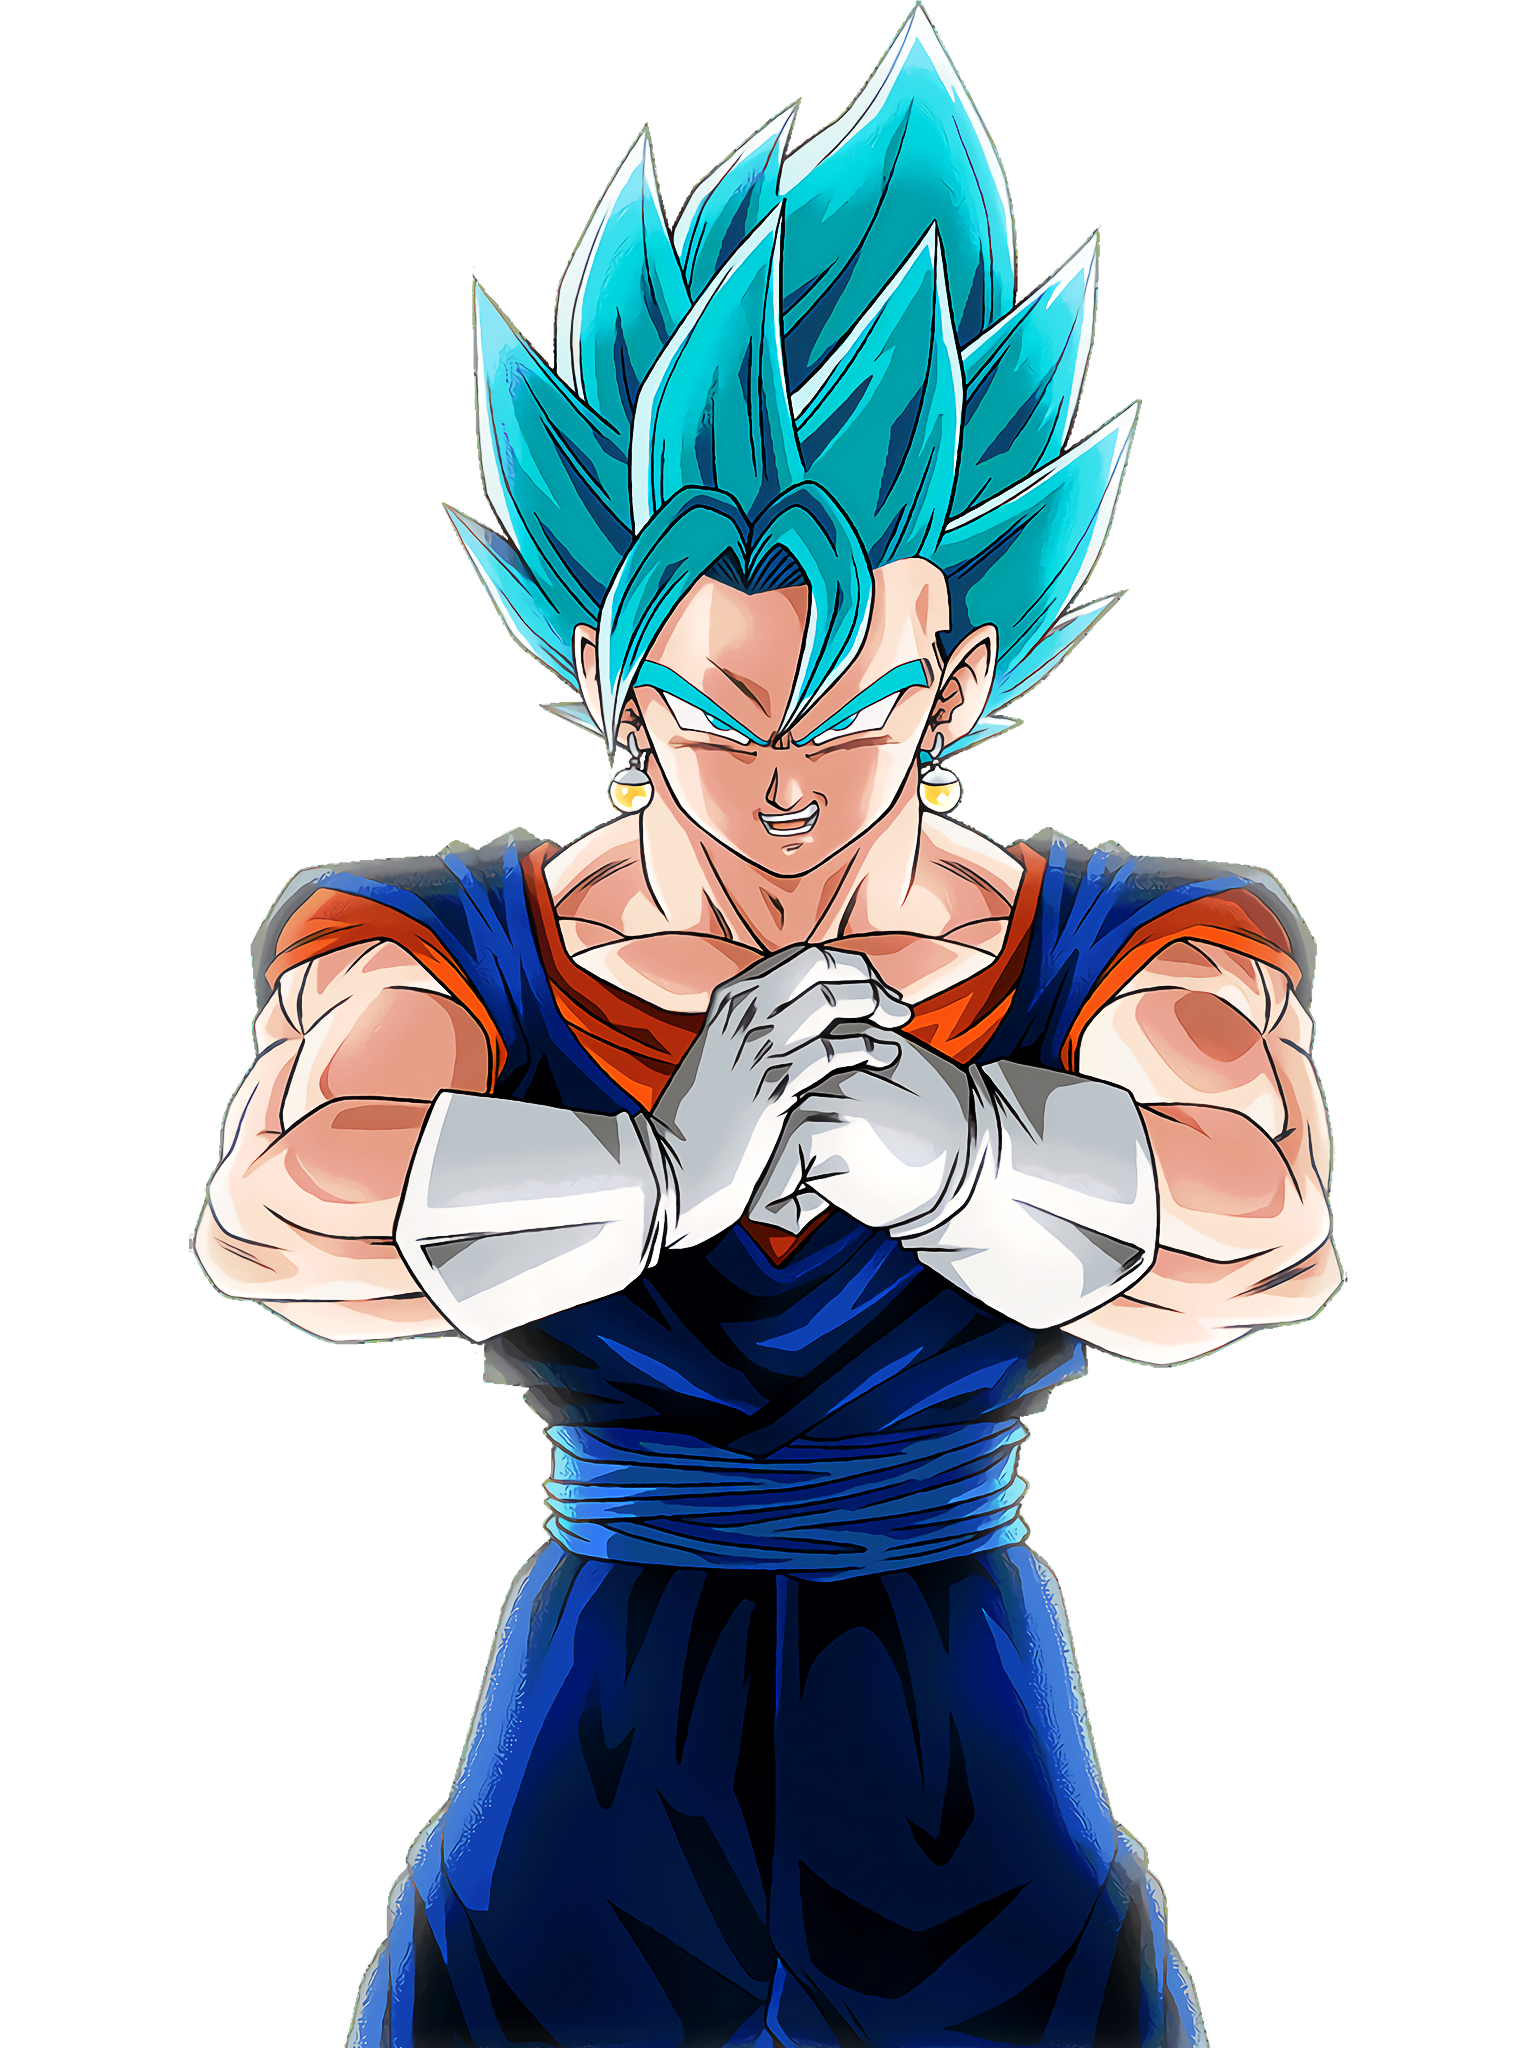 Vegito Blue Summon Animation 3 DBS Render (Dragon Ball Z Dokkan Battle).png